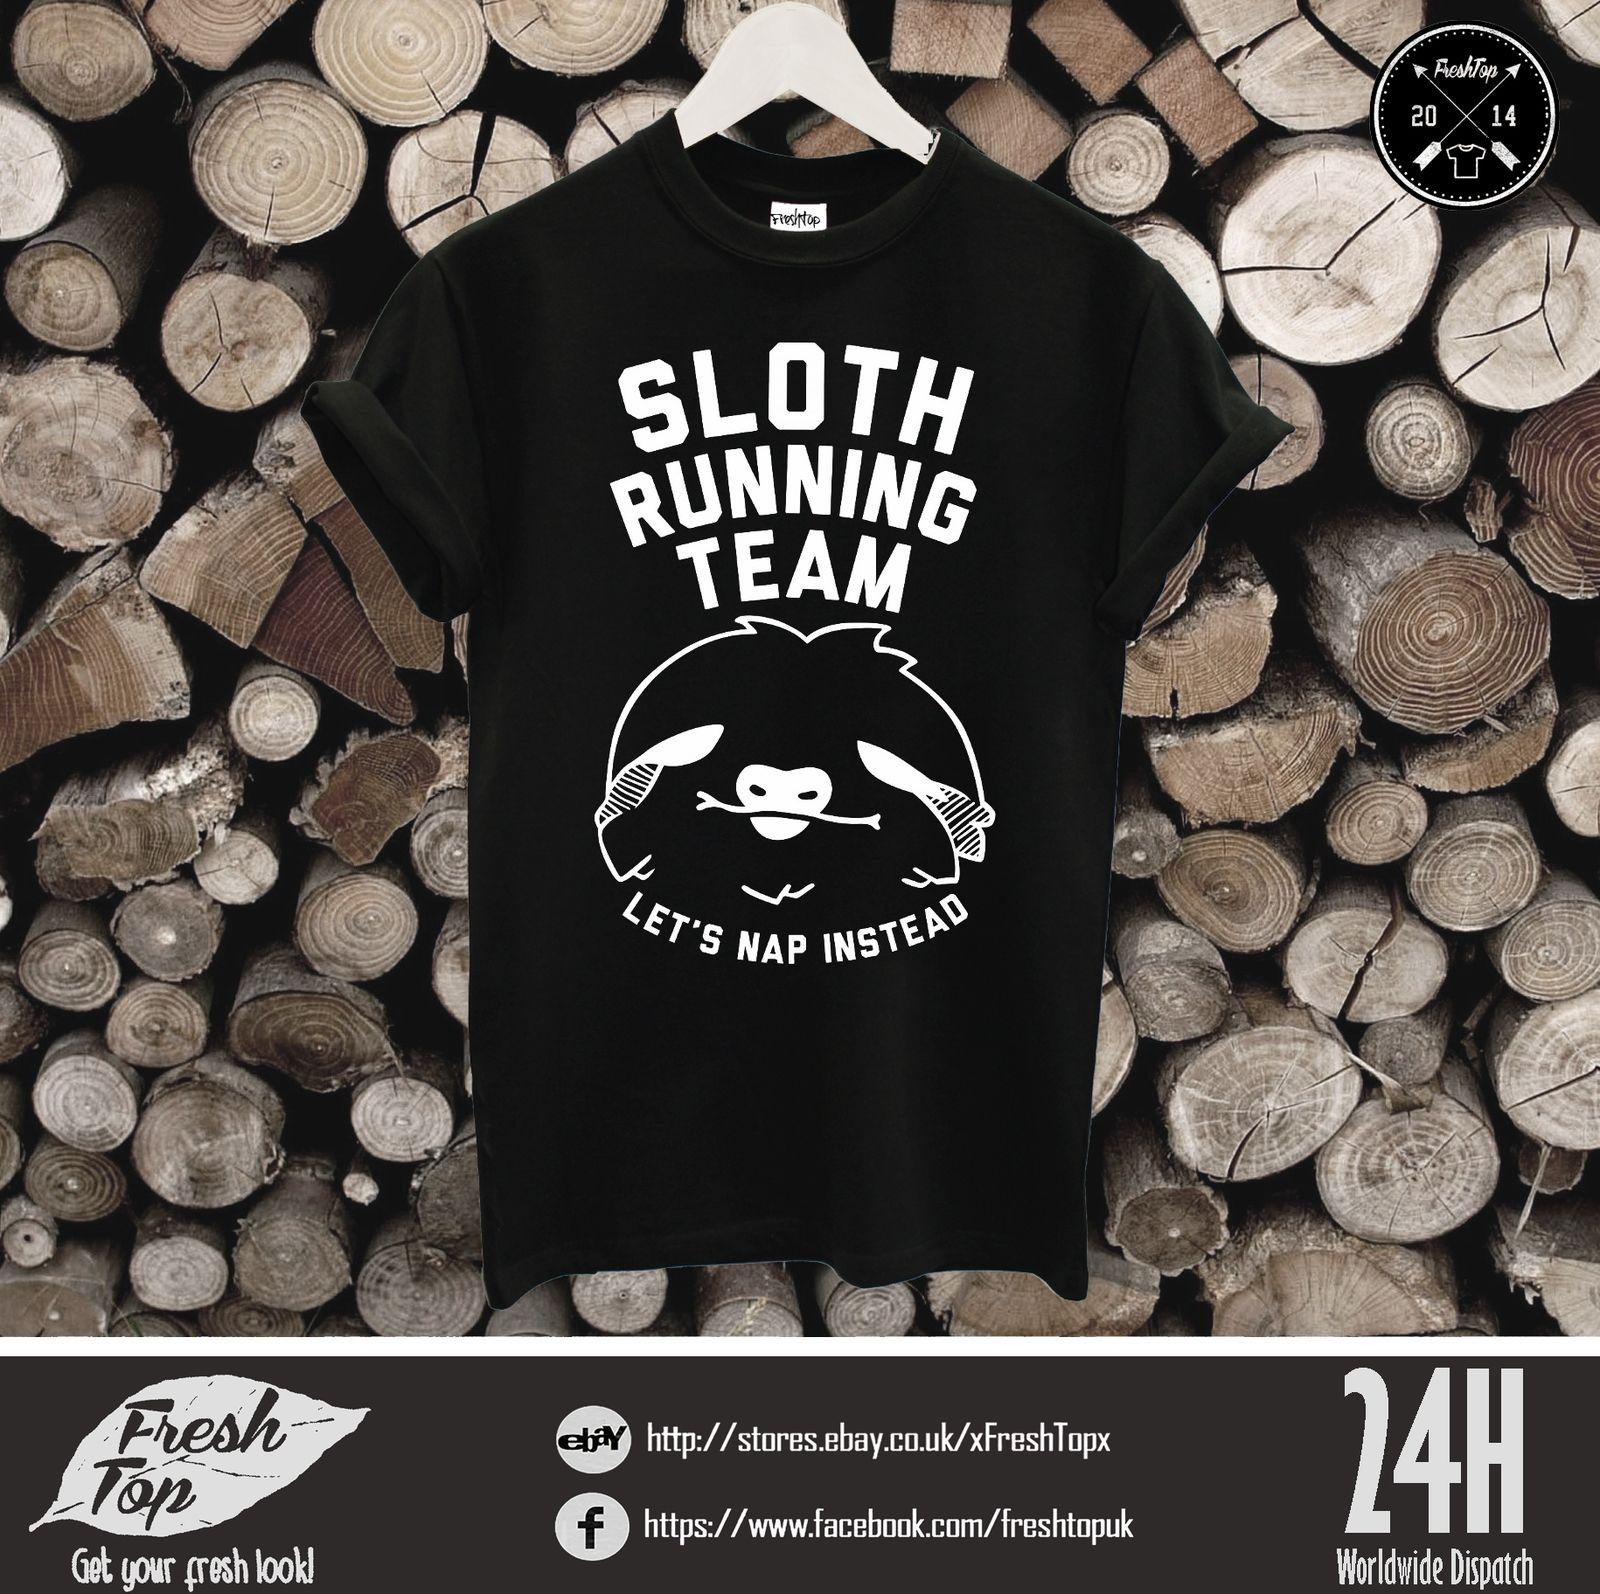 841e3e021 Sloth Running Team Let'S Nap Instead T Shirt Lazy Yoga Running Gym Ask Me  Why Hip Hop Style Tops Tee Shirt Casual Man Short Sleeve Leisure T Shirts  With ...